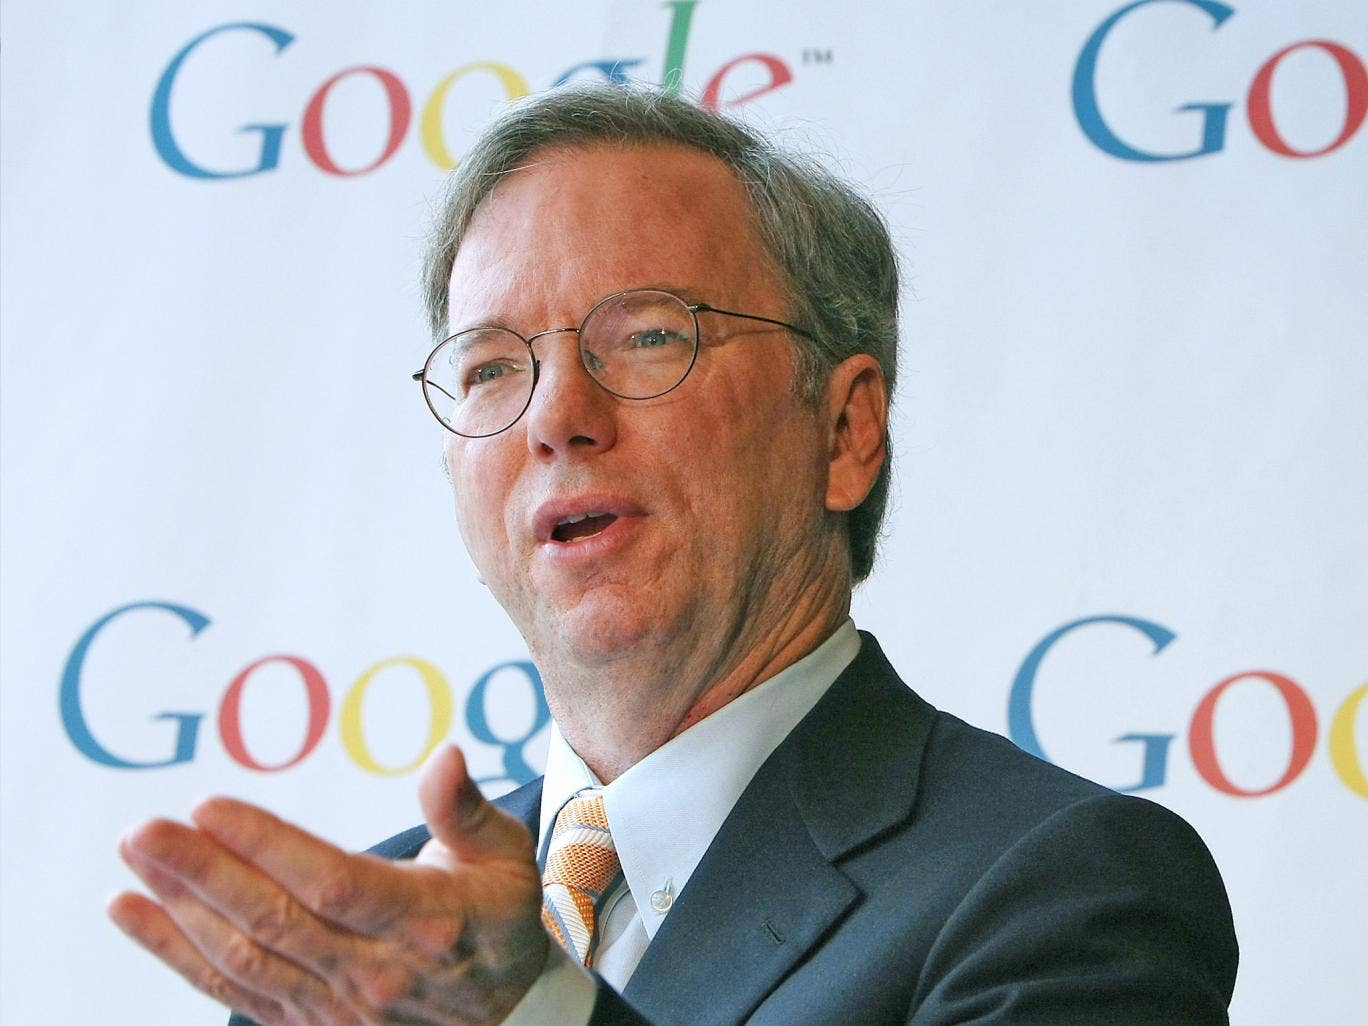 Google Chairman, Eric Schmidt: 'I am very proud of the structure that we set up'